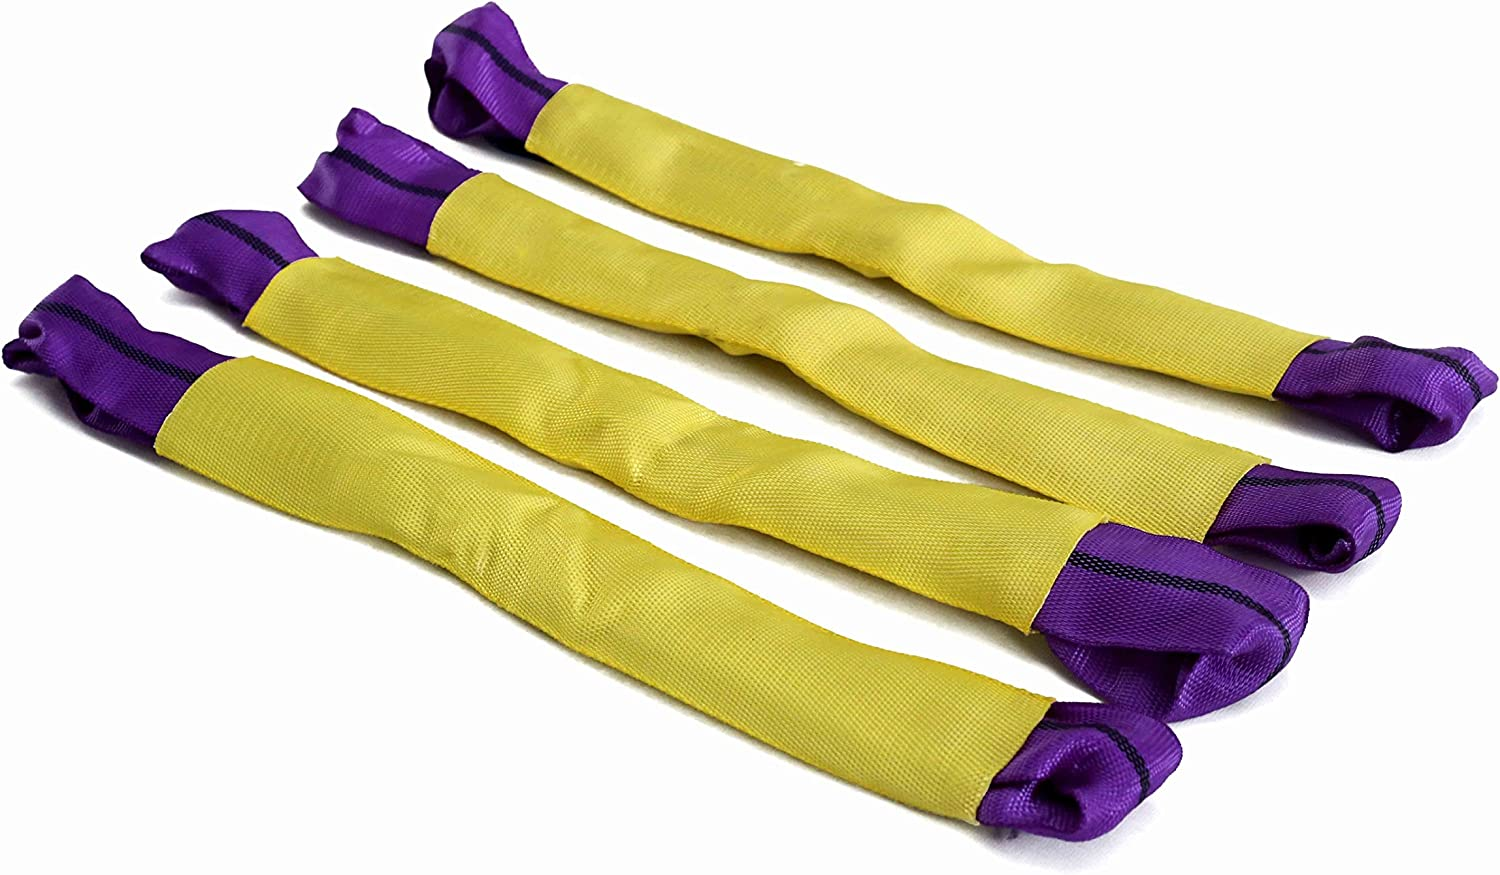 4 DiversityWrap Alloy Wheel Bridging Securing Link Straps for Axle Recovery Vehicle Trailer Transporter Yellow//Purple